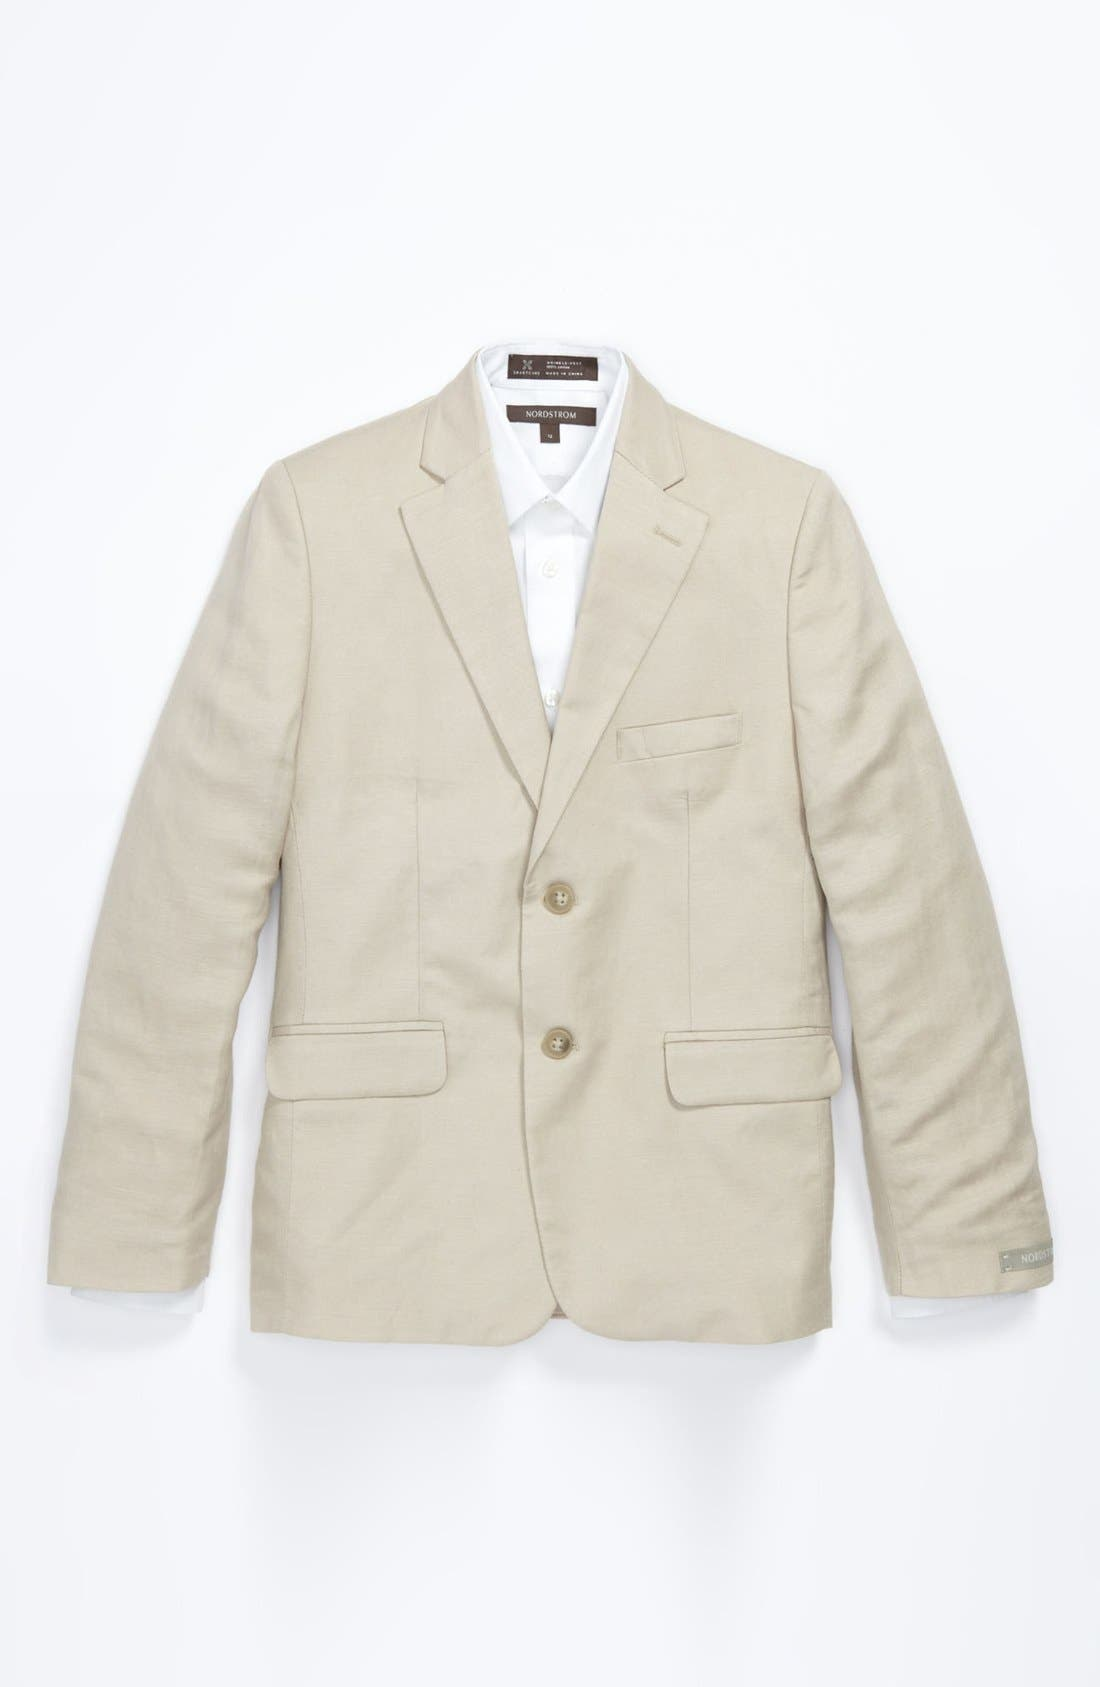 Alternate Image 1 Selected - Nordstrom 'Christopher' Linen Blend Blazer (Big Boys)